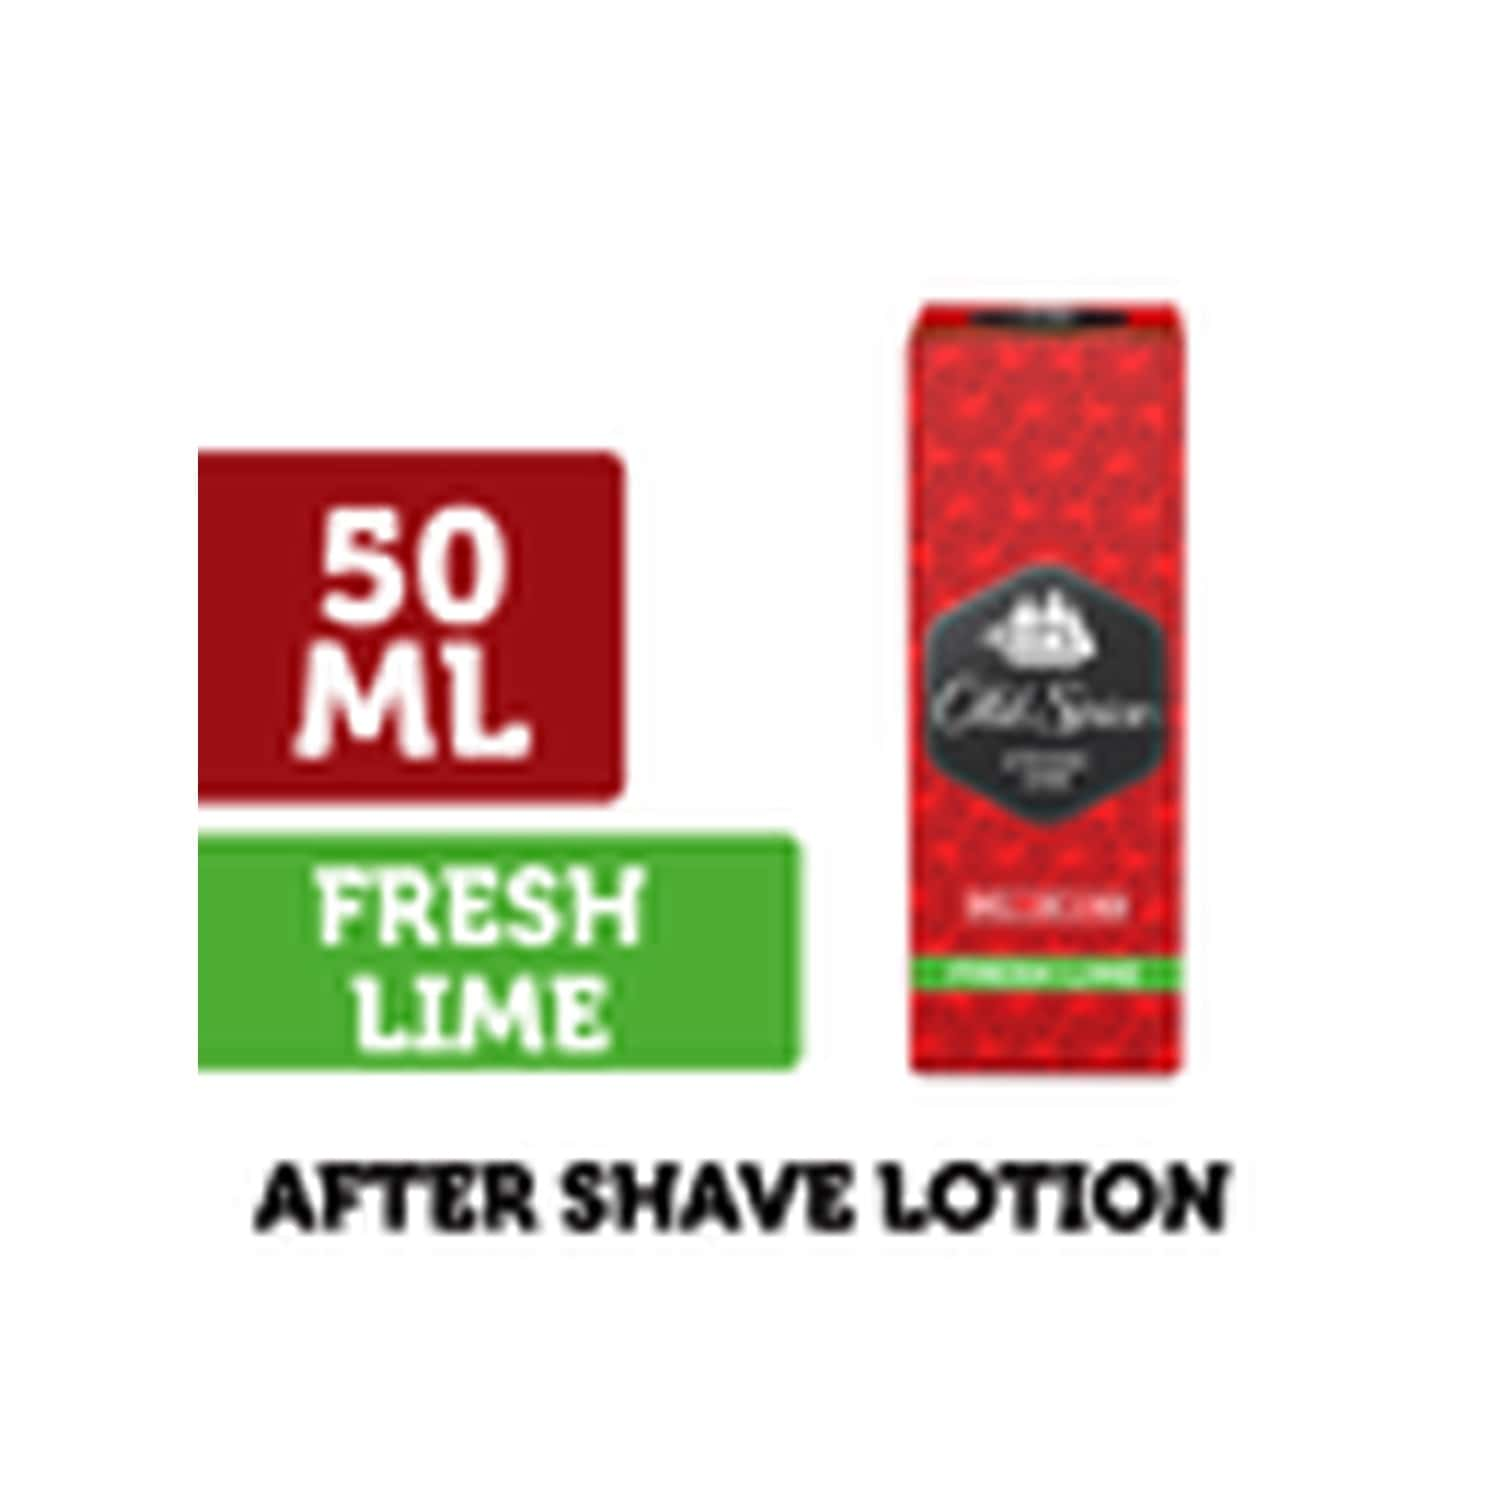 Old Spice After Shave Lotion (fresh Lime) - 50ml